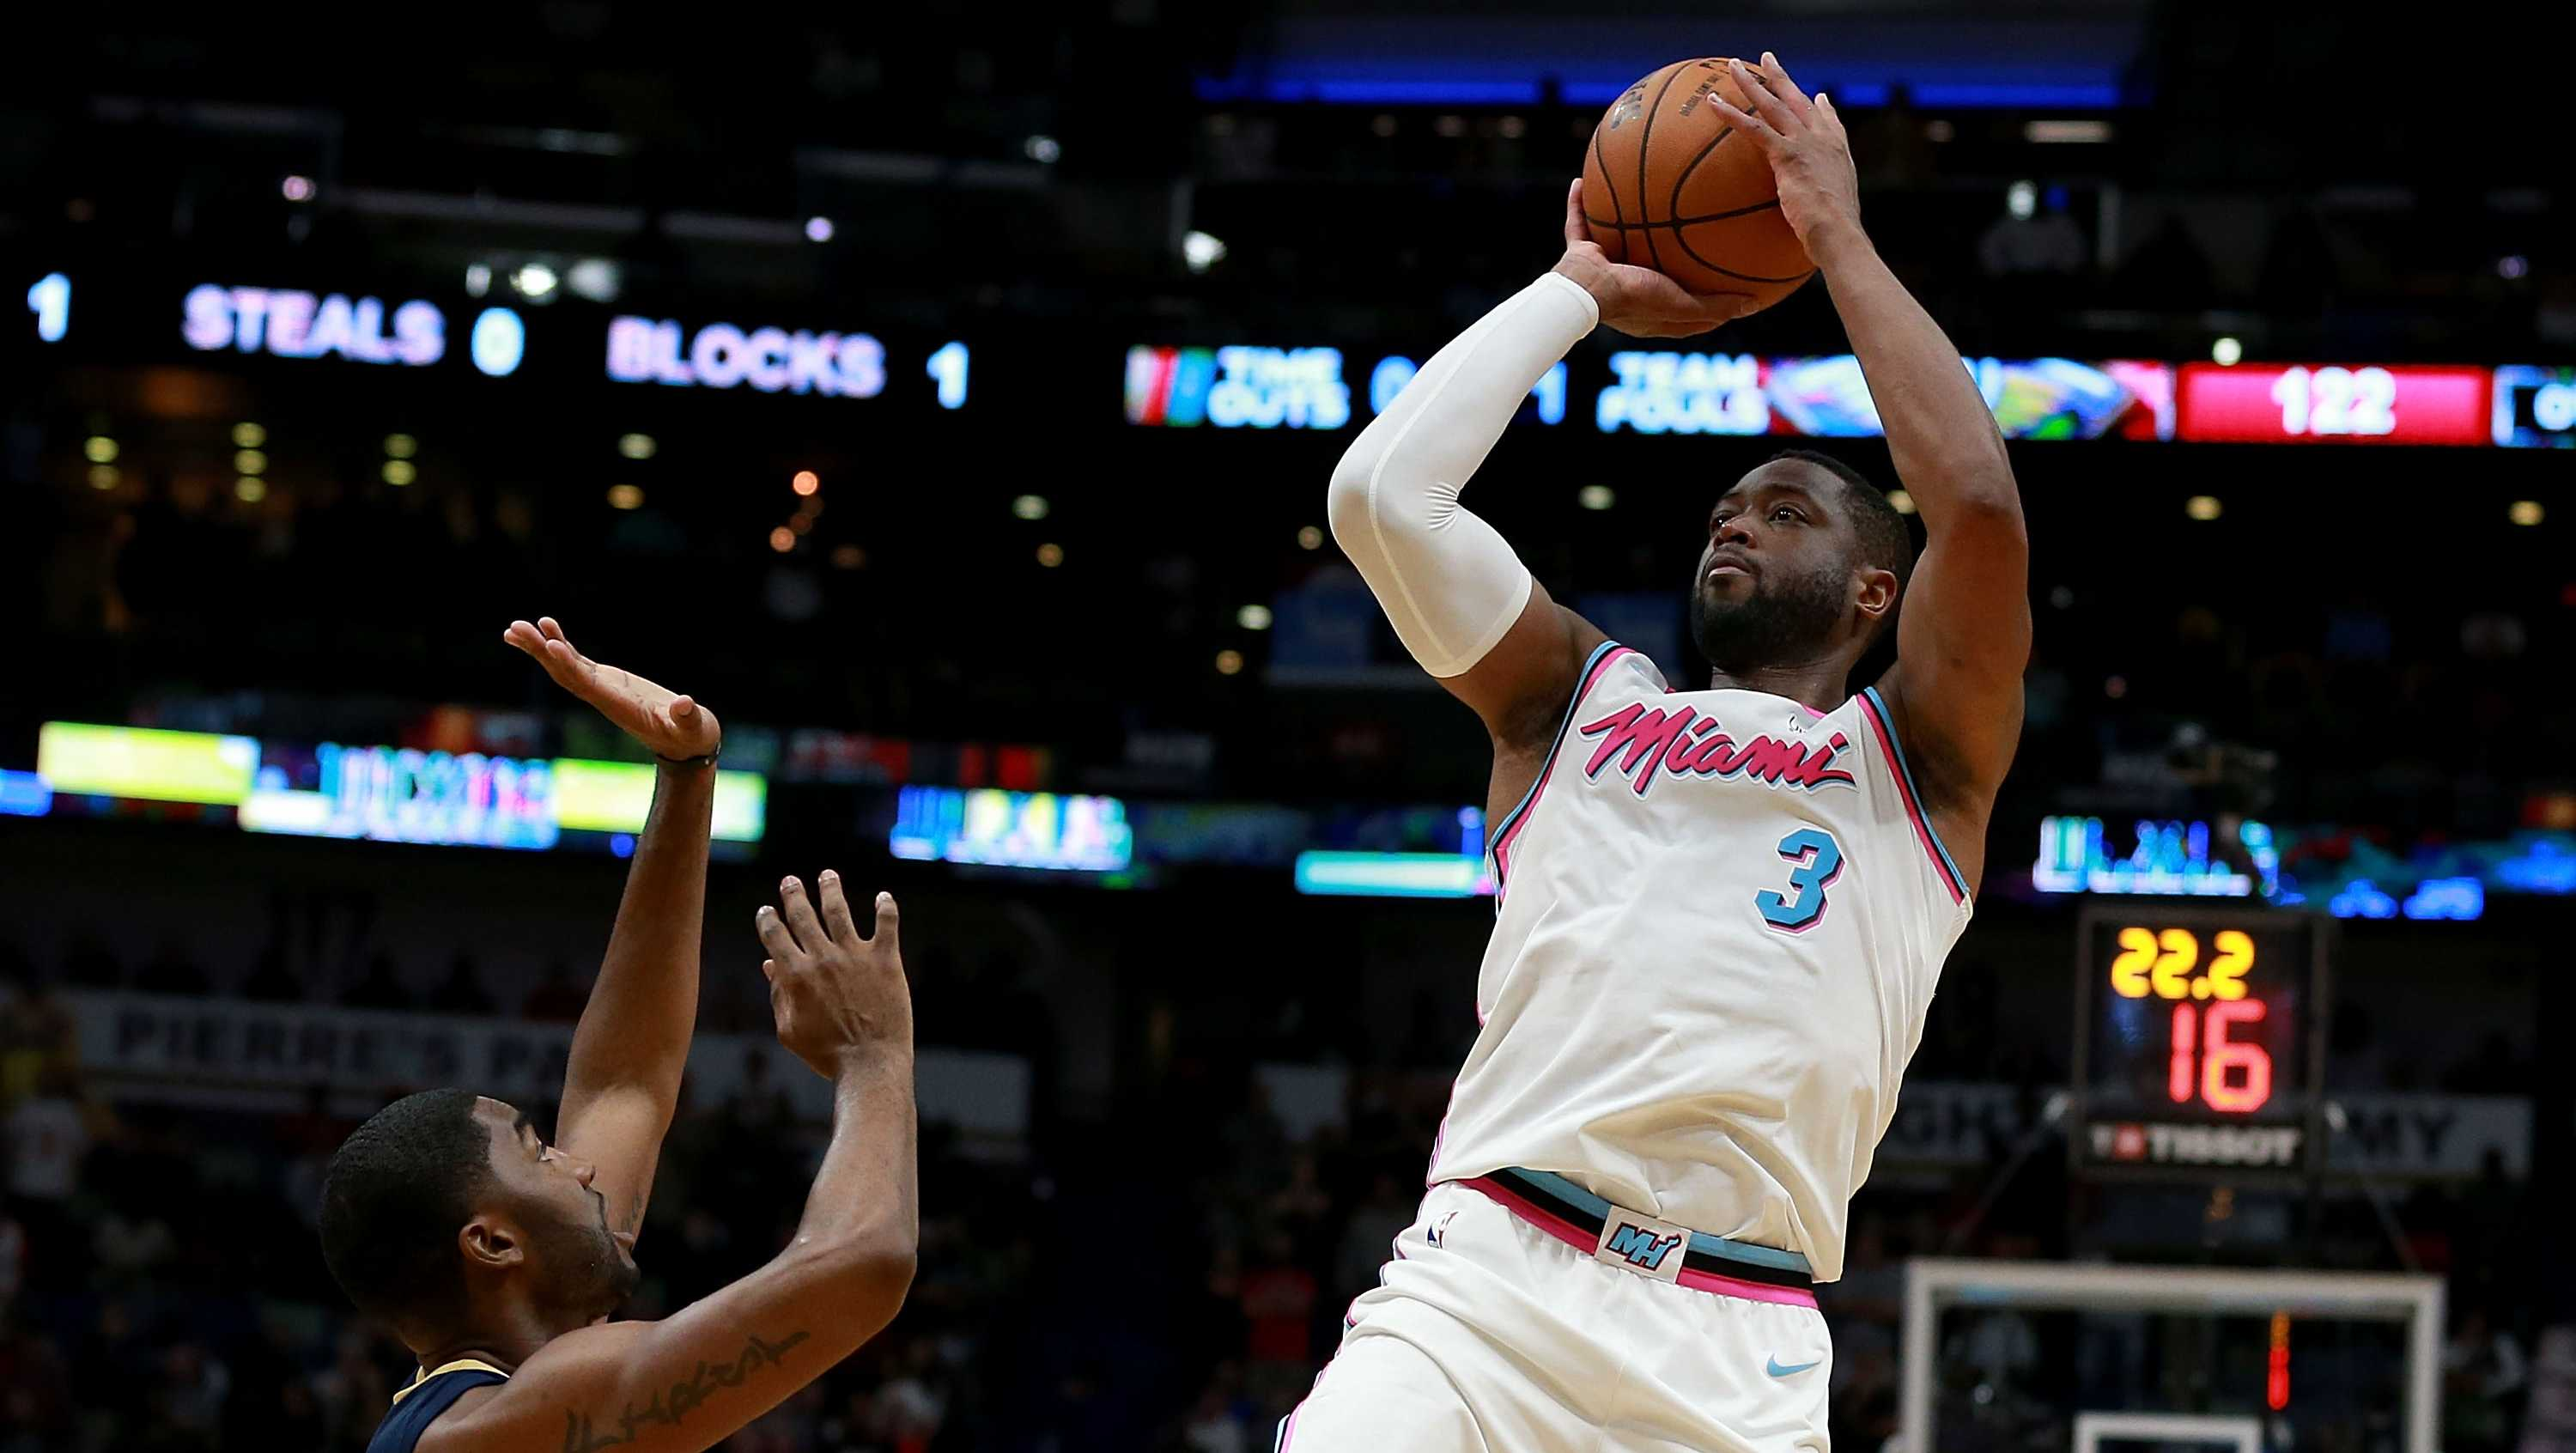 Dwyane Wade #3 of the Miami Heat shoots over Darius Miller #21 of the New Orleans Pelicans during a NBA game at the Smoothie King Center on February 23, 2018 in New Orleans, Louisiana